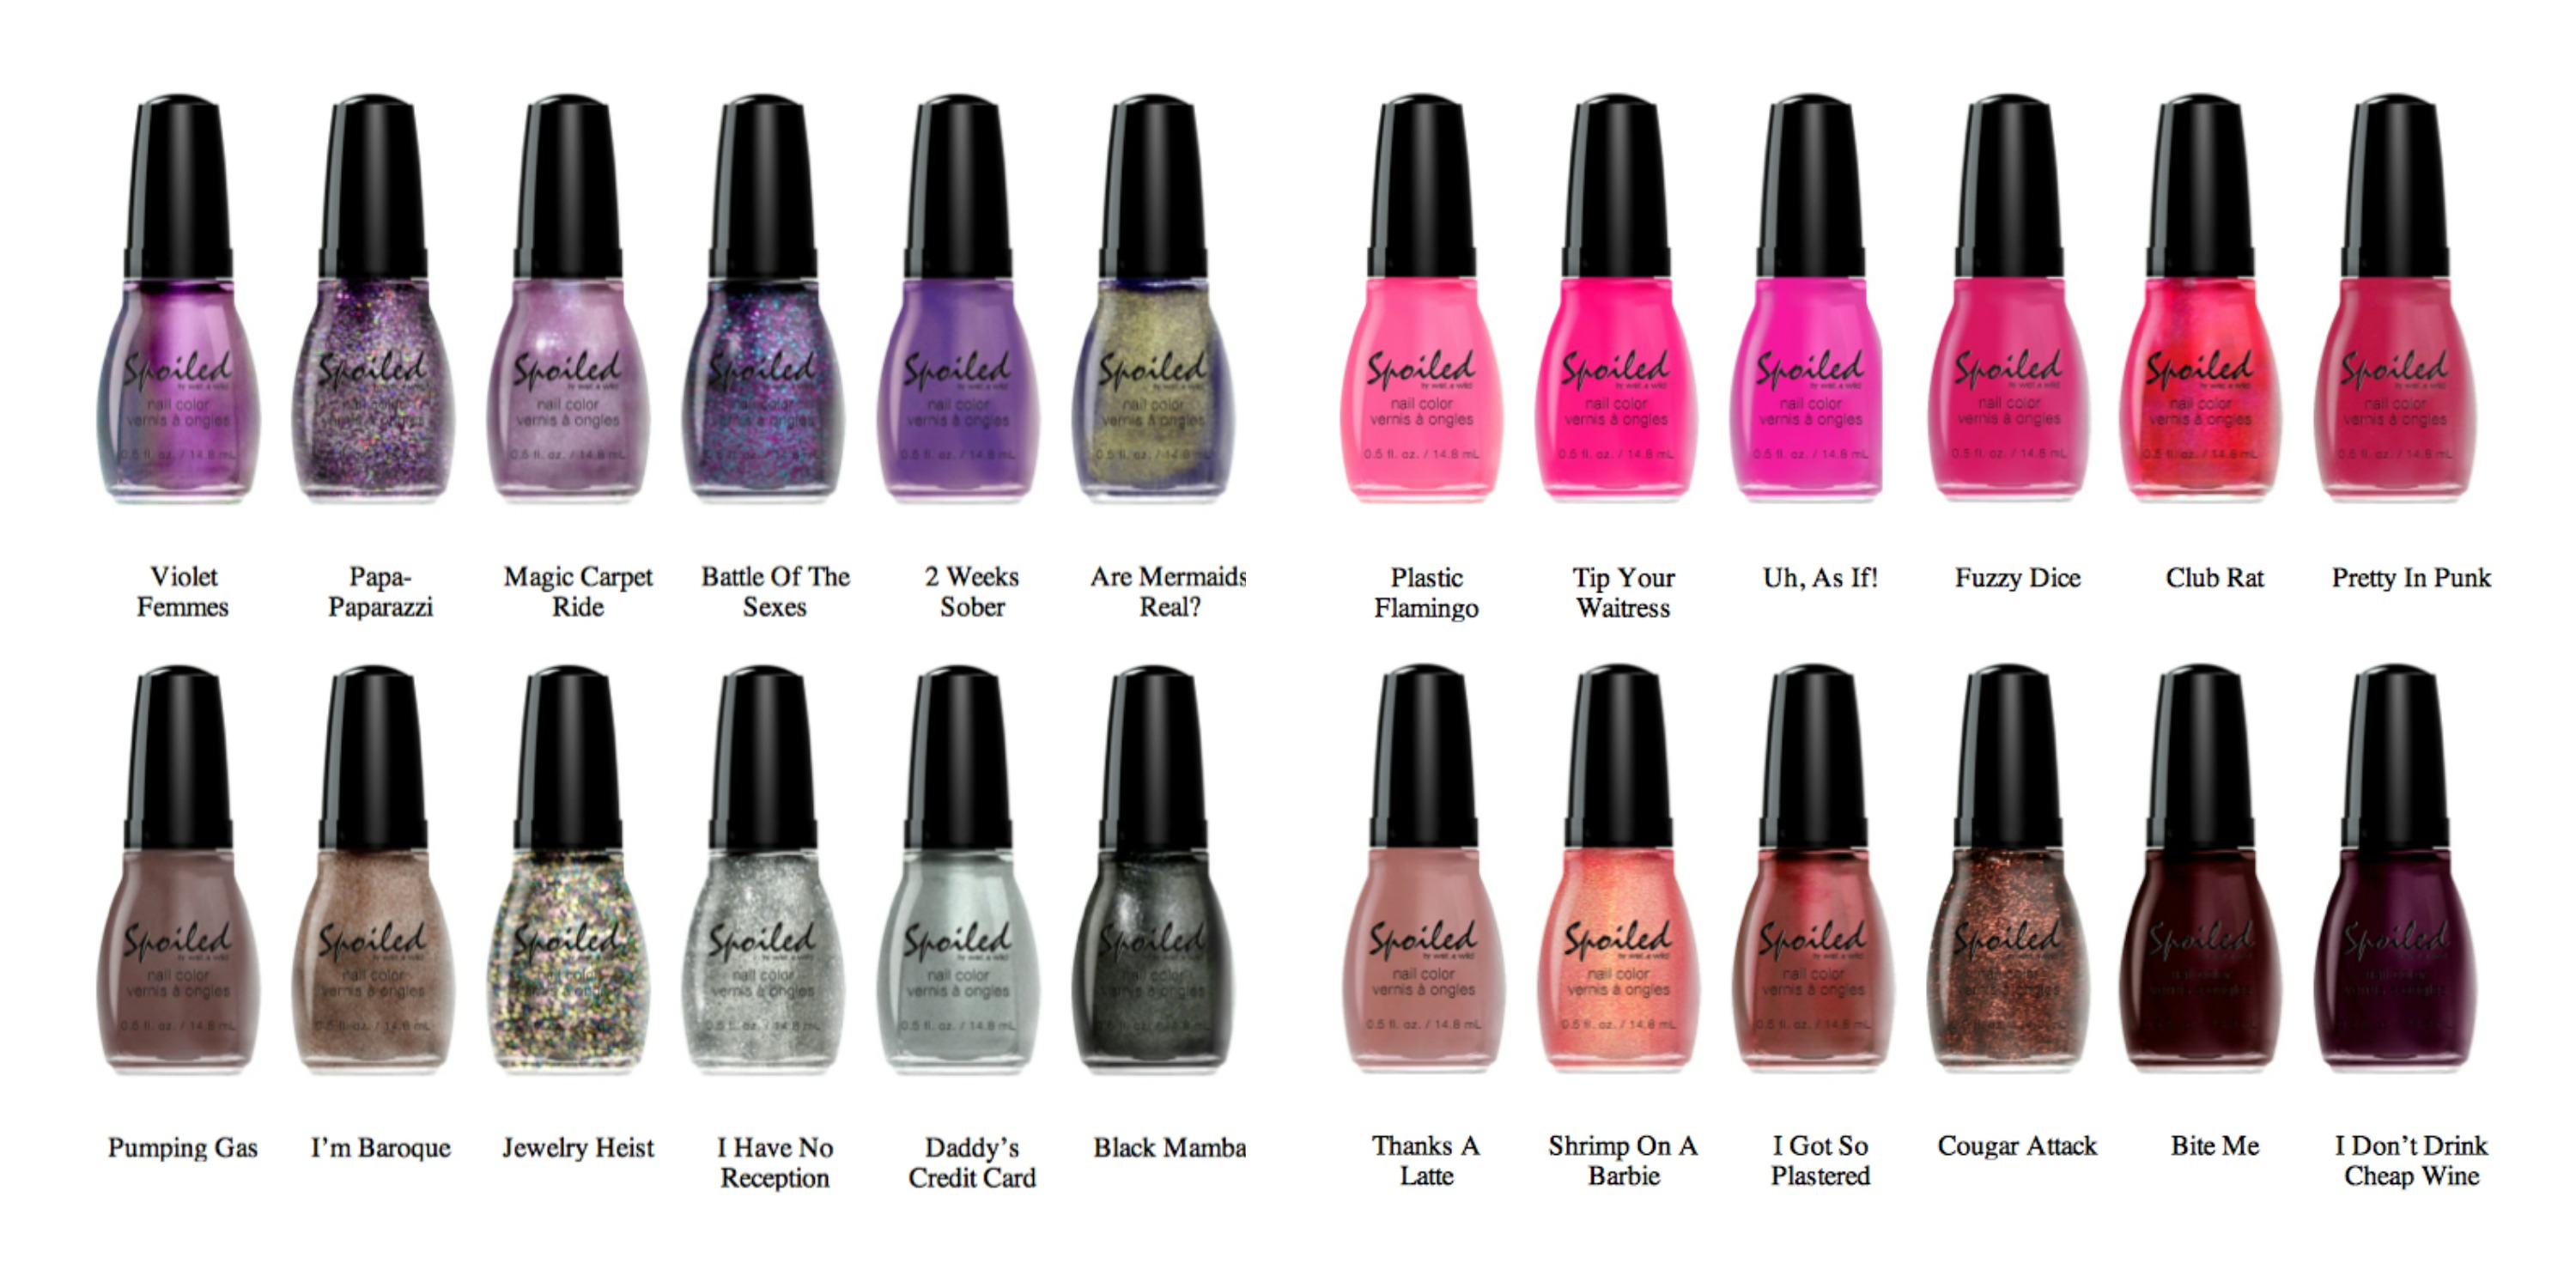 Wet n\' Wild Spoiled Nail Polish - The Anti Mom Blog